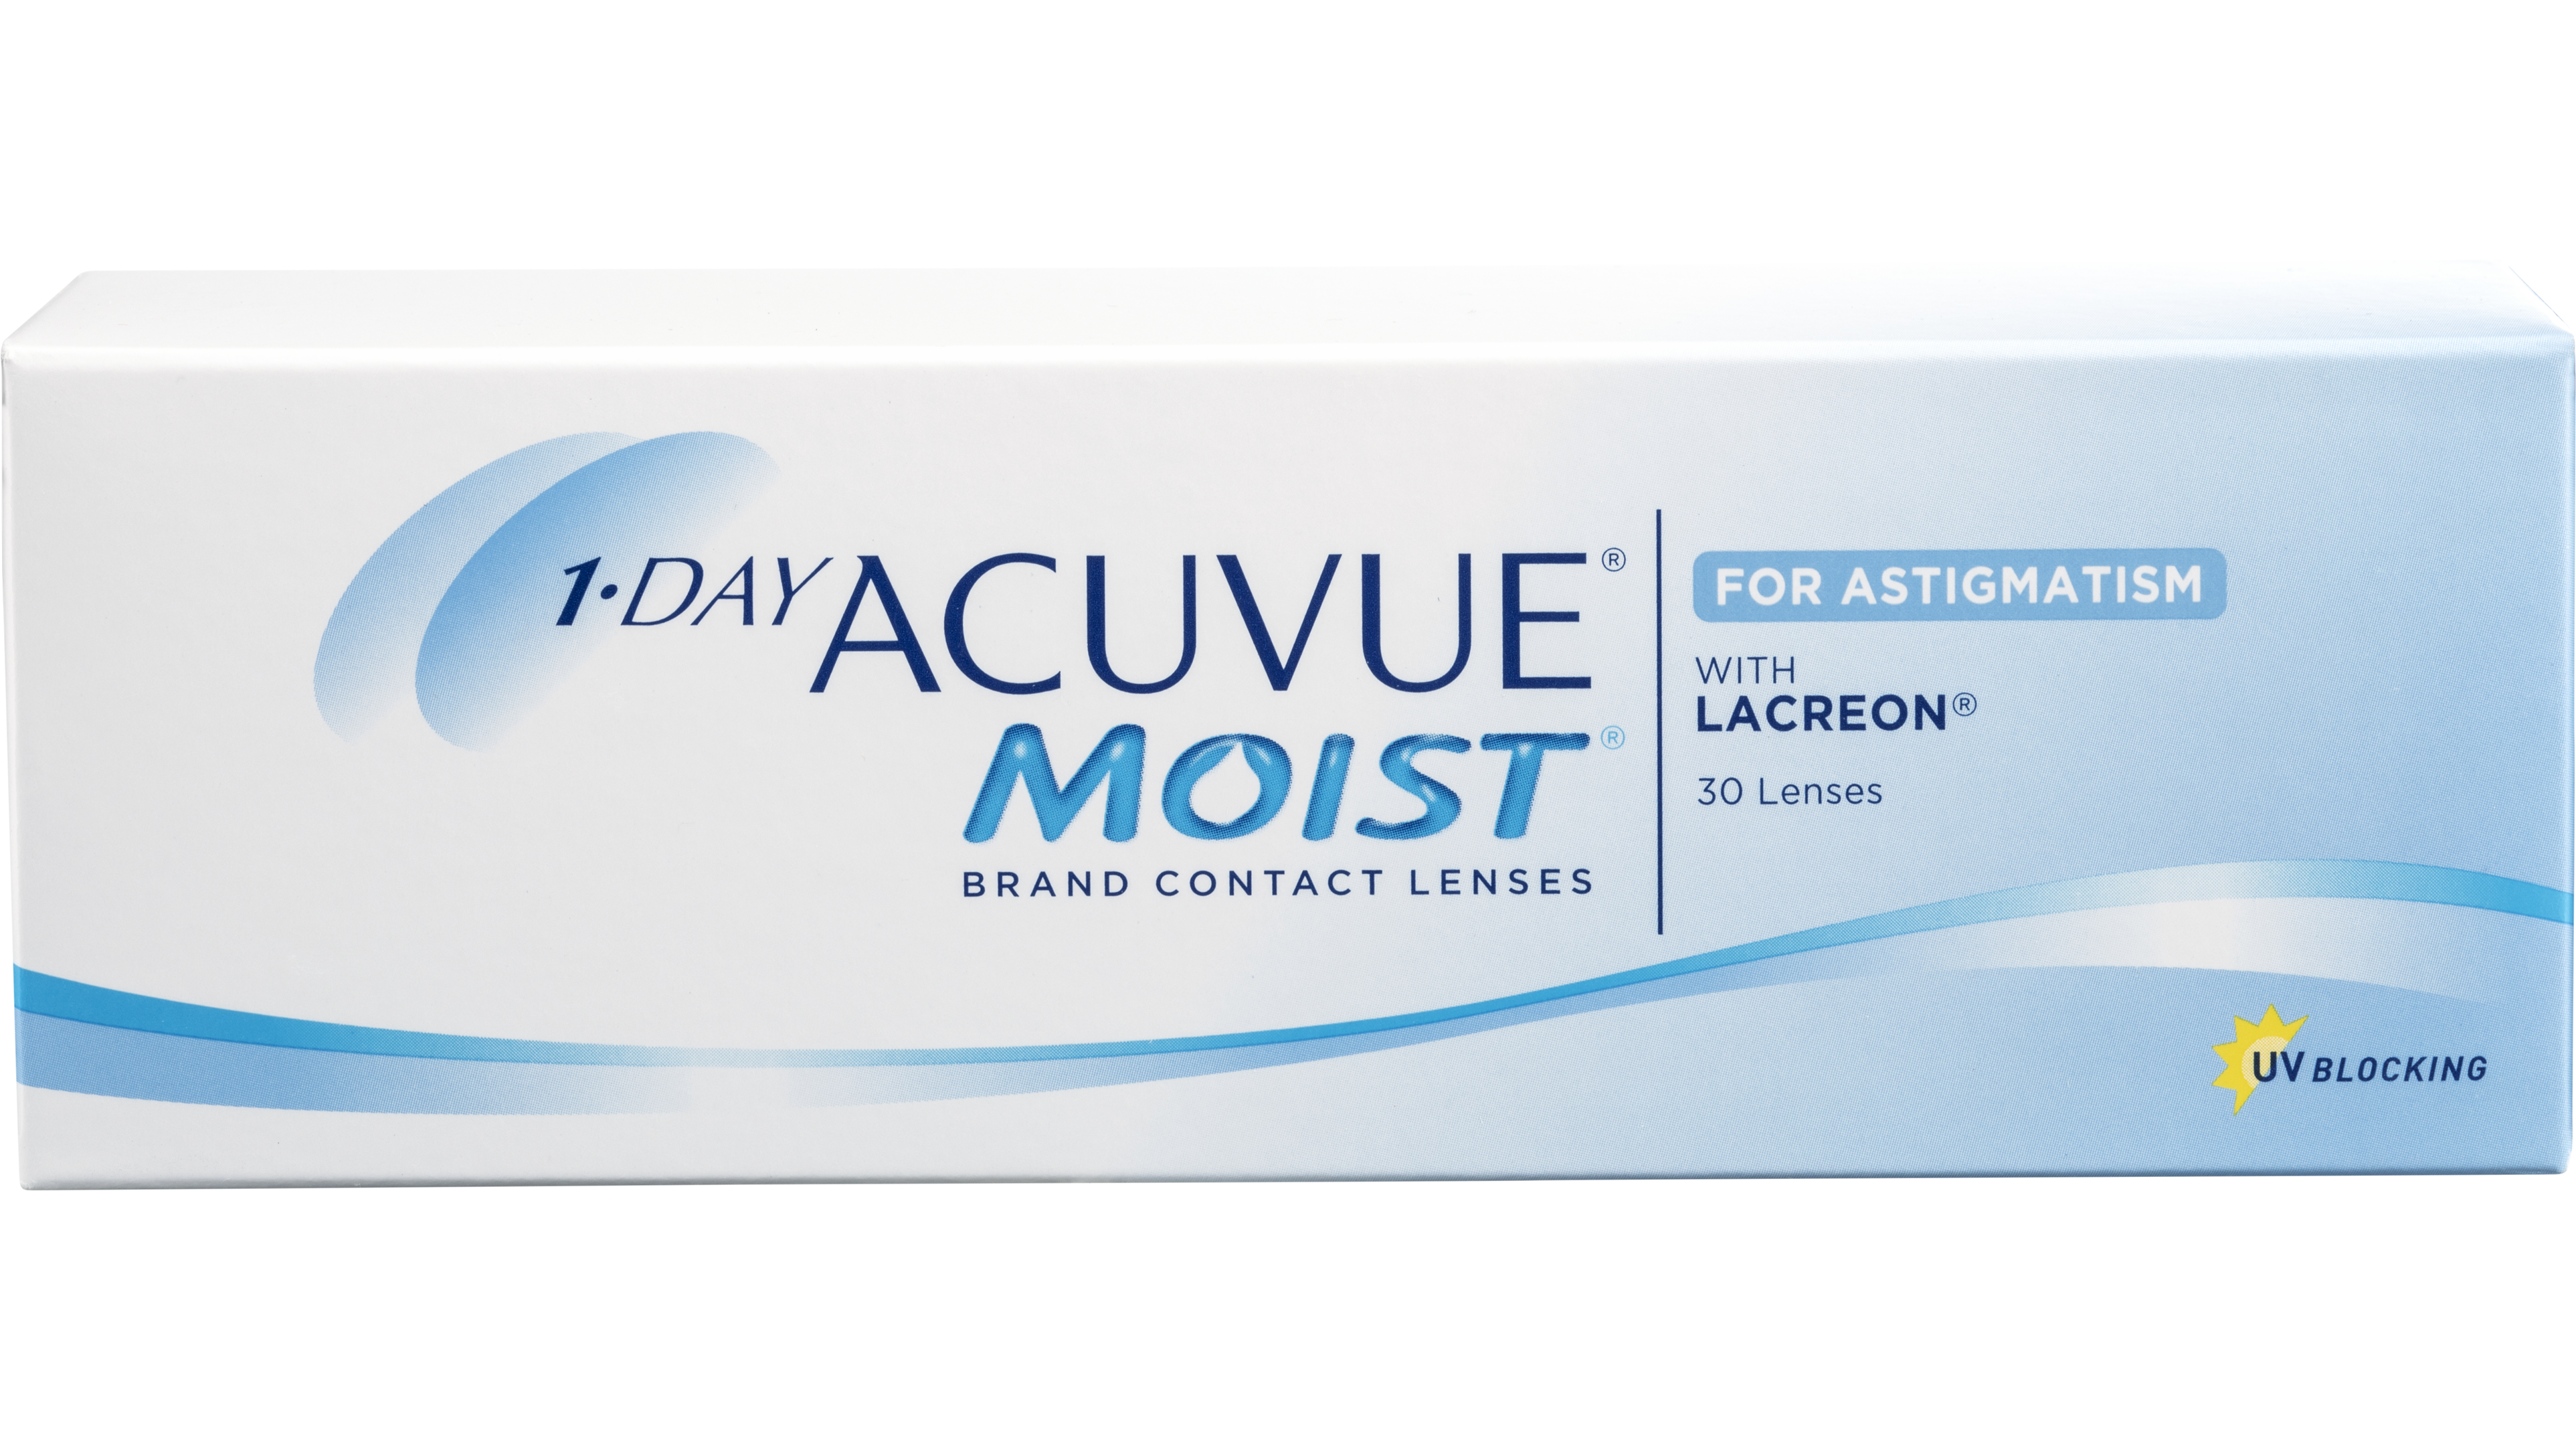 Front 1 Day Acuvue Moist for Astigmatism